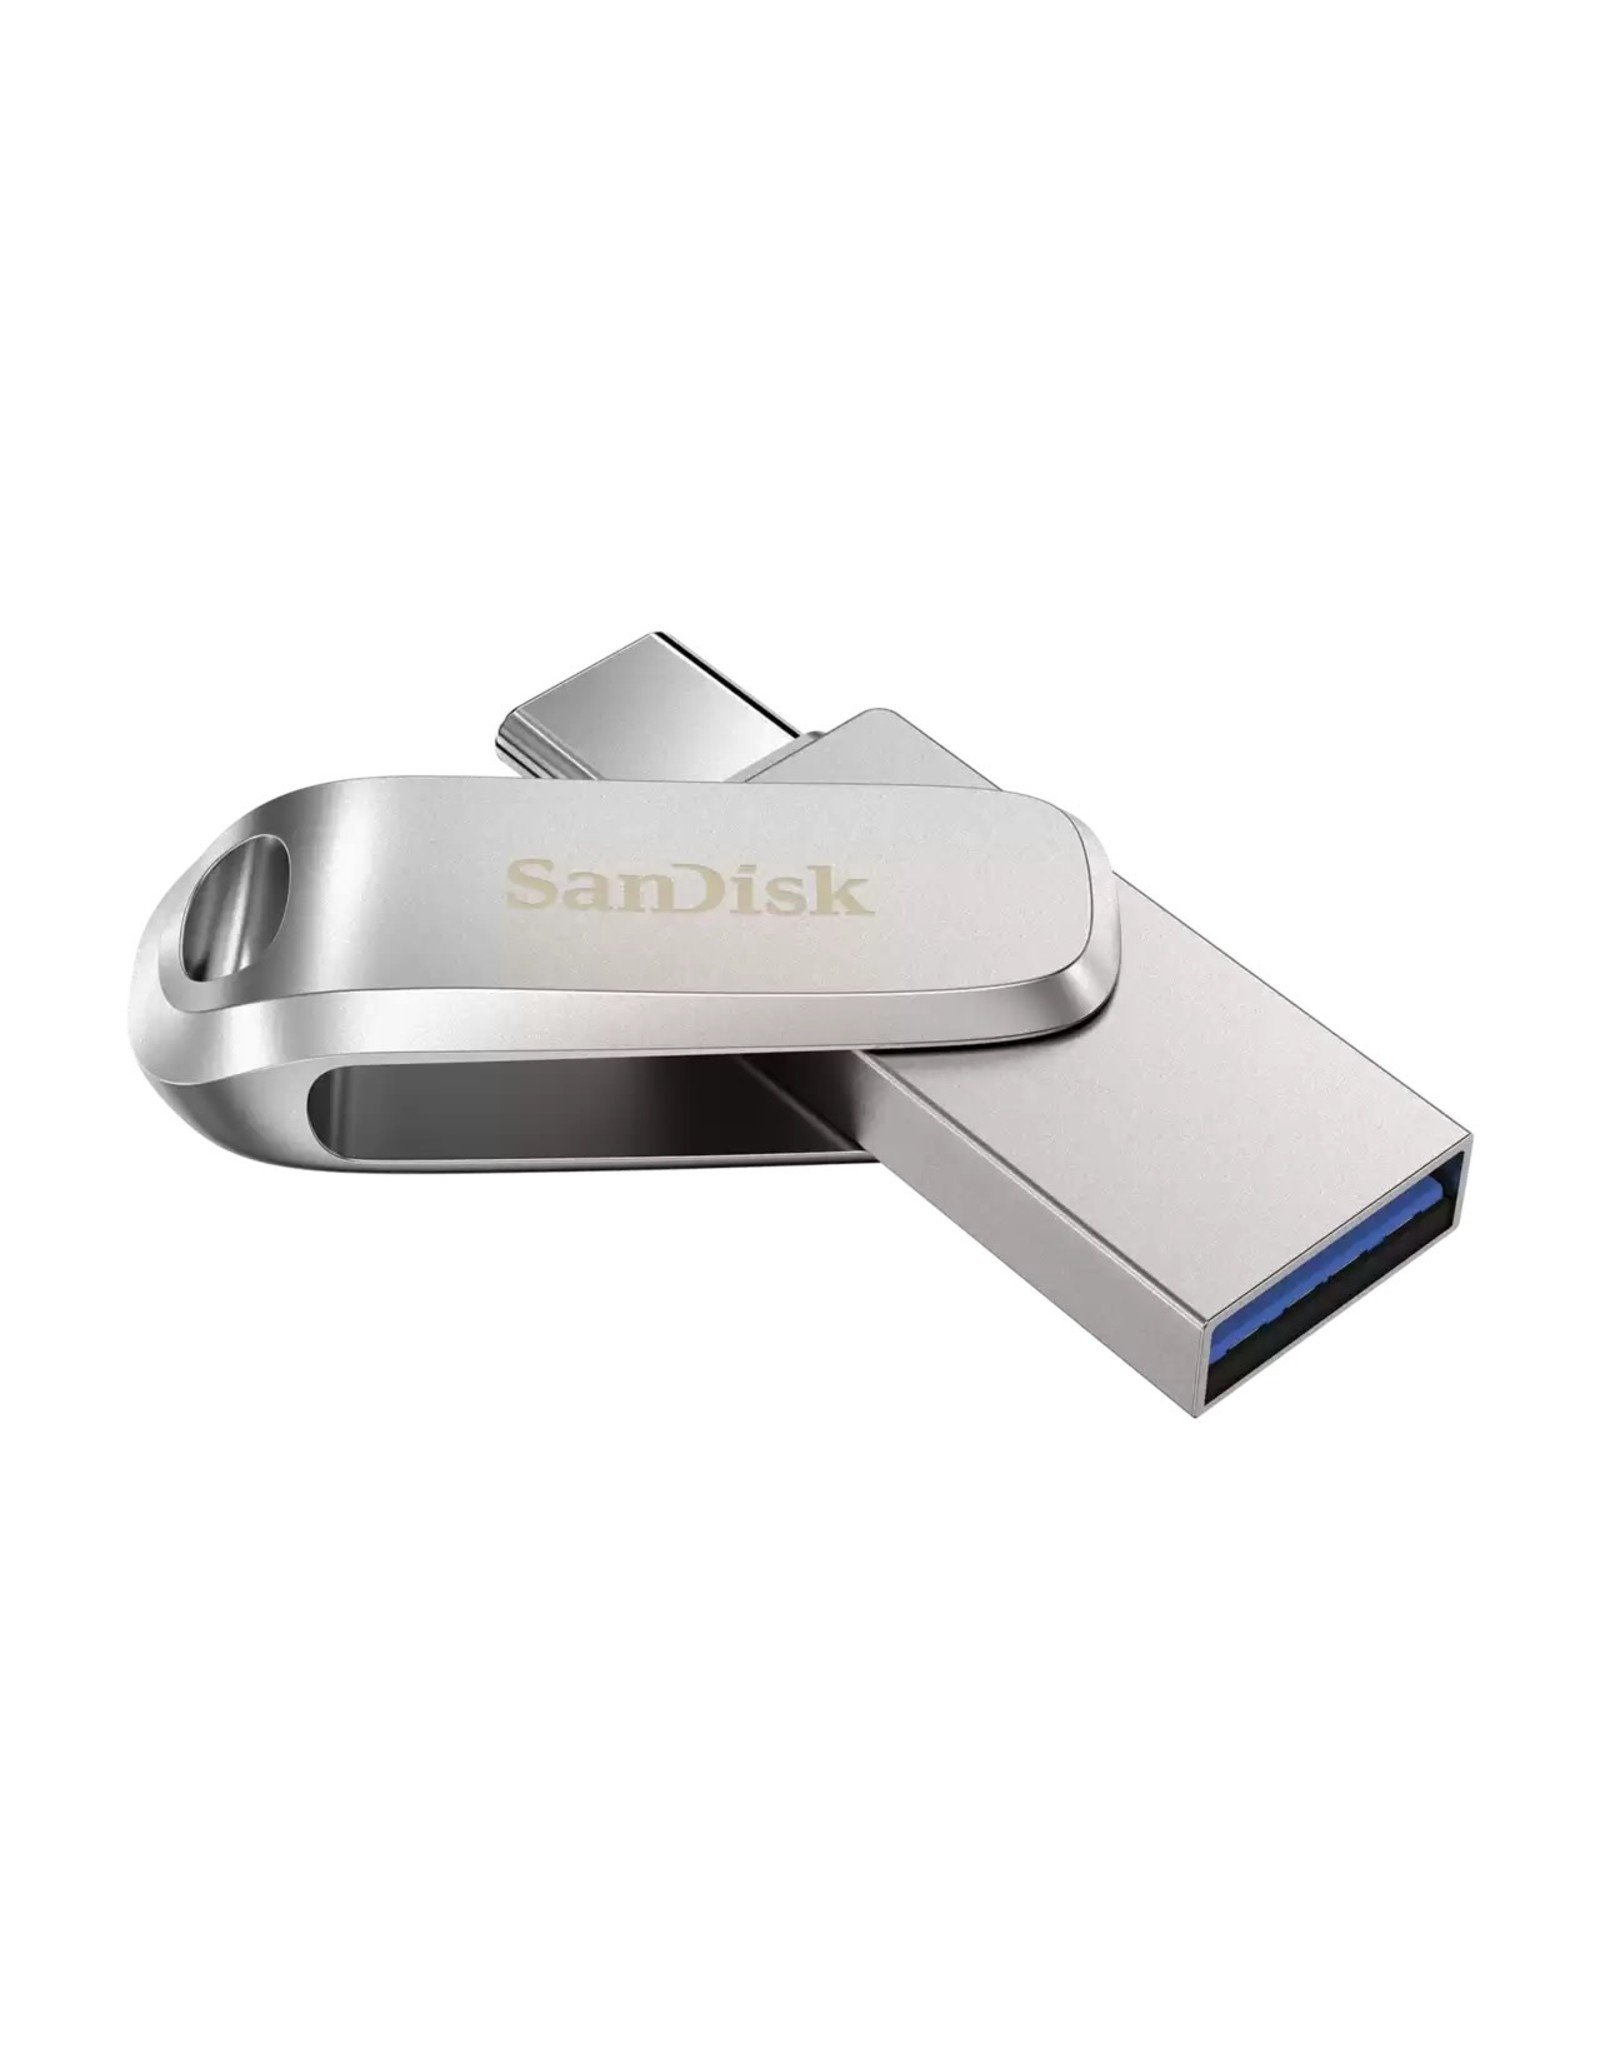 Sandisk SanDisk Ultra® 64GB Dual Drive Luxe USB-C and USB-A